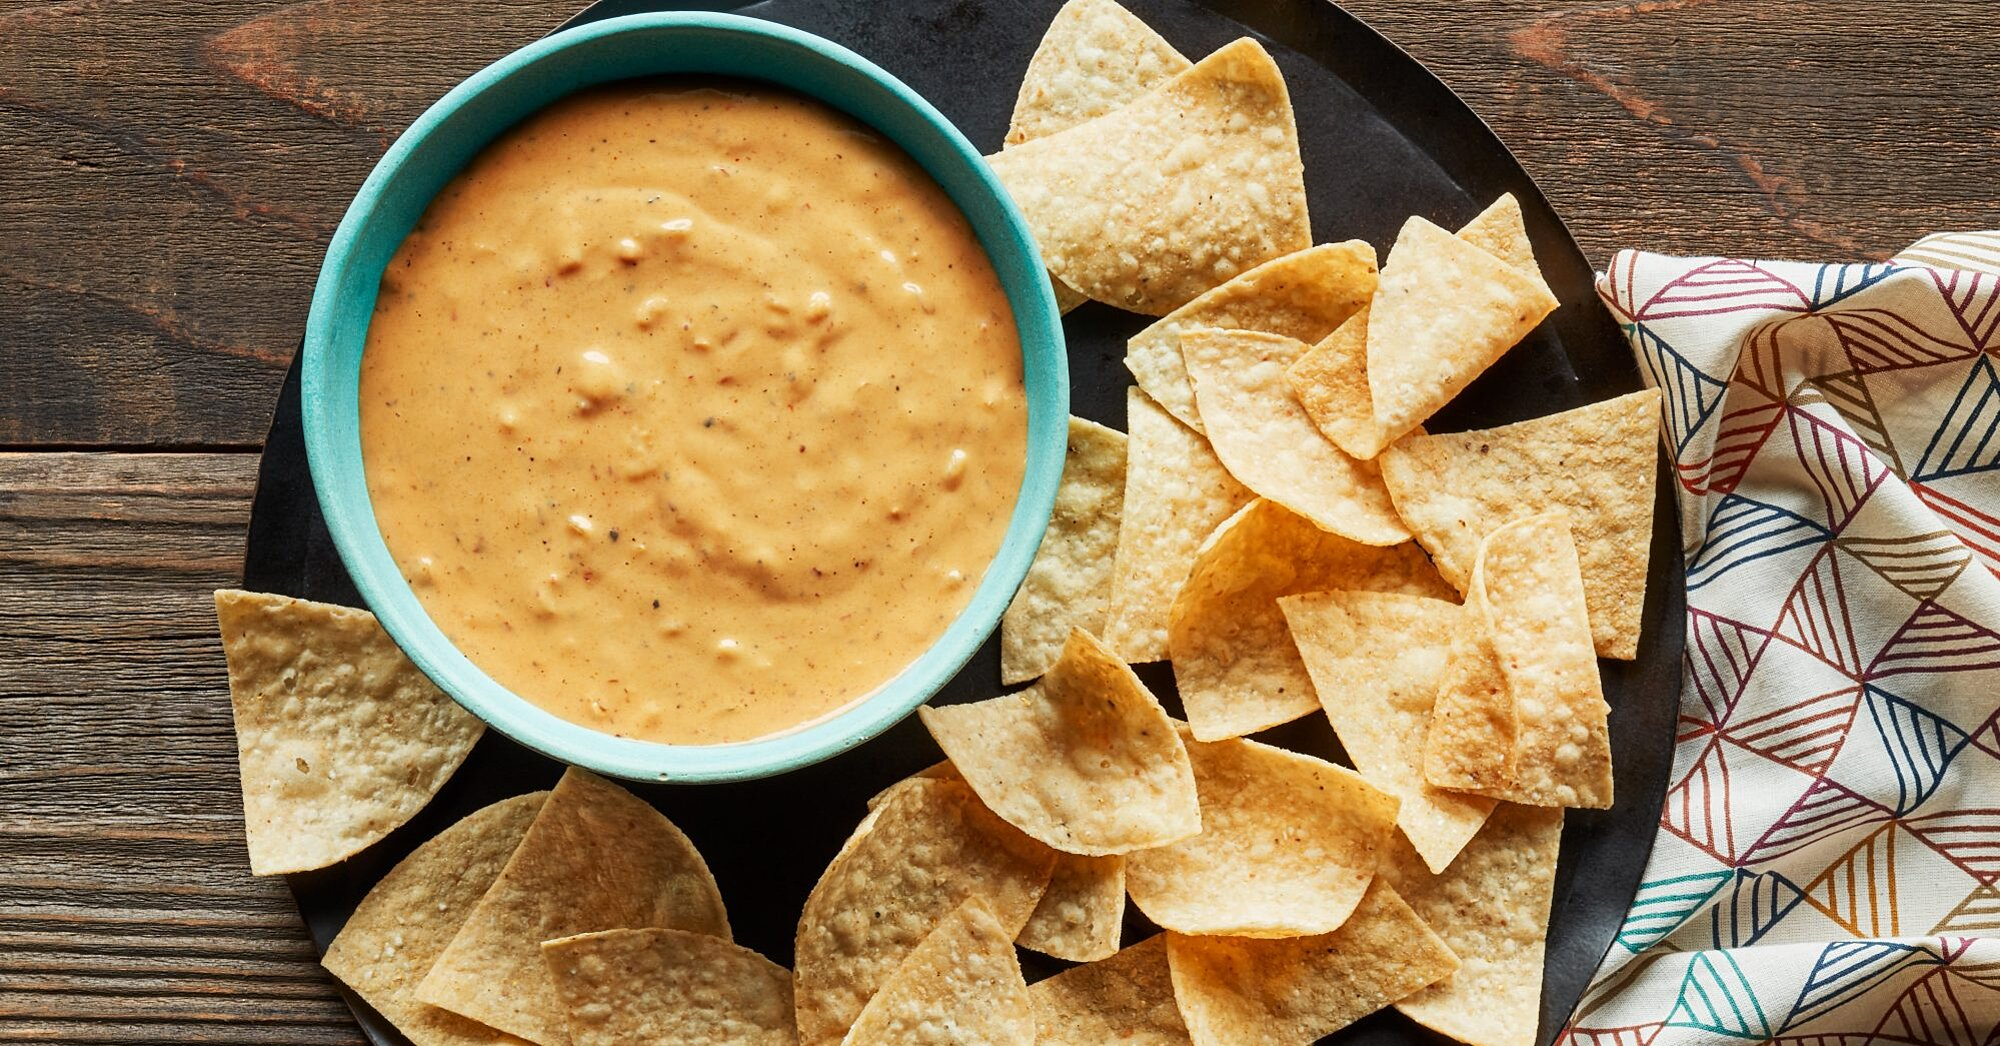 How to Make Vegan Queso, the Protein-Packed, Plant-Based Cure for Bland Food